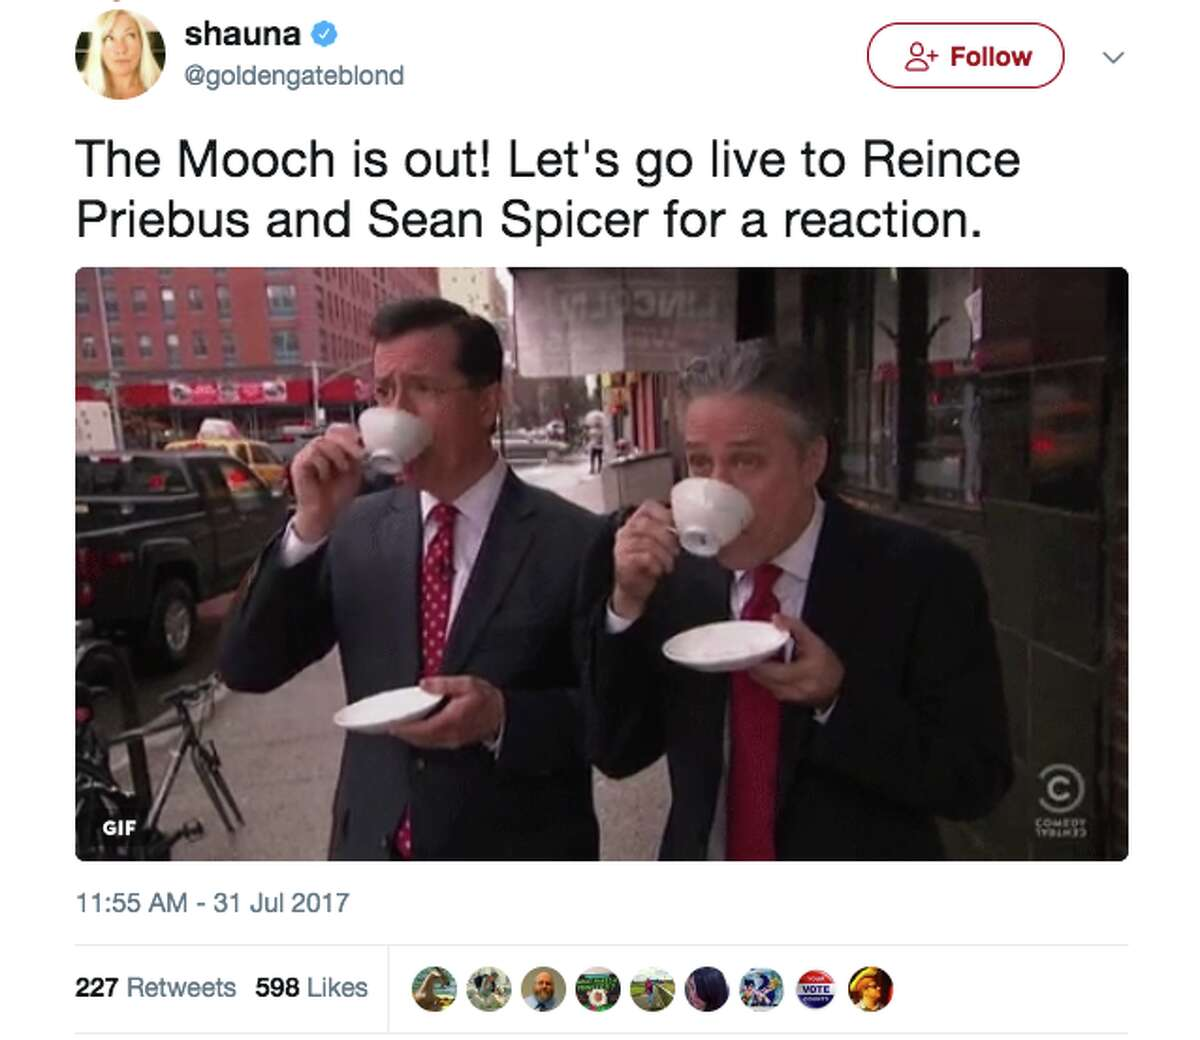 Memes and reactions poured in as soon as news broke that Anthony Scaramucci was out at White House Communications Director on July 31.